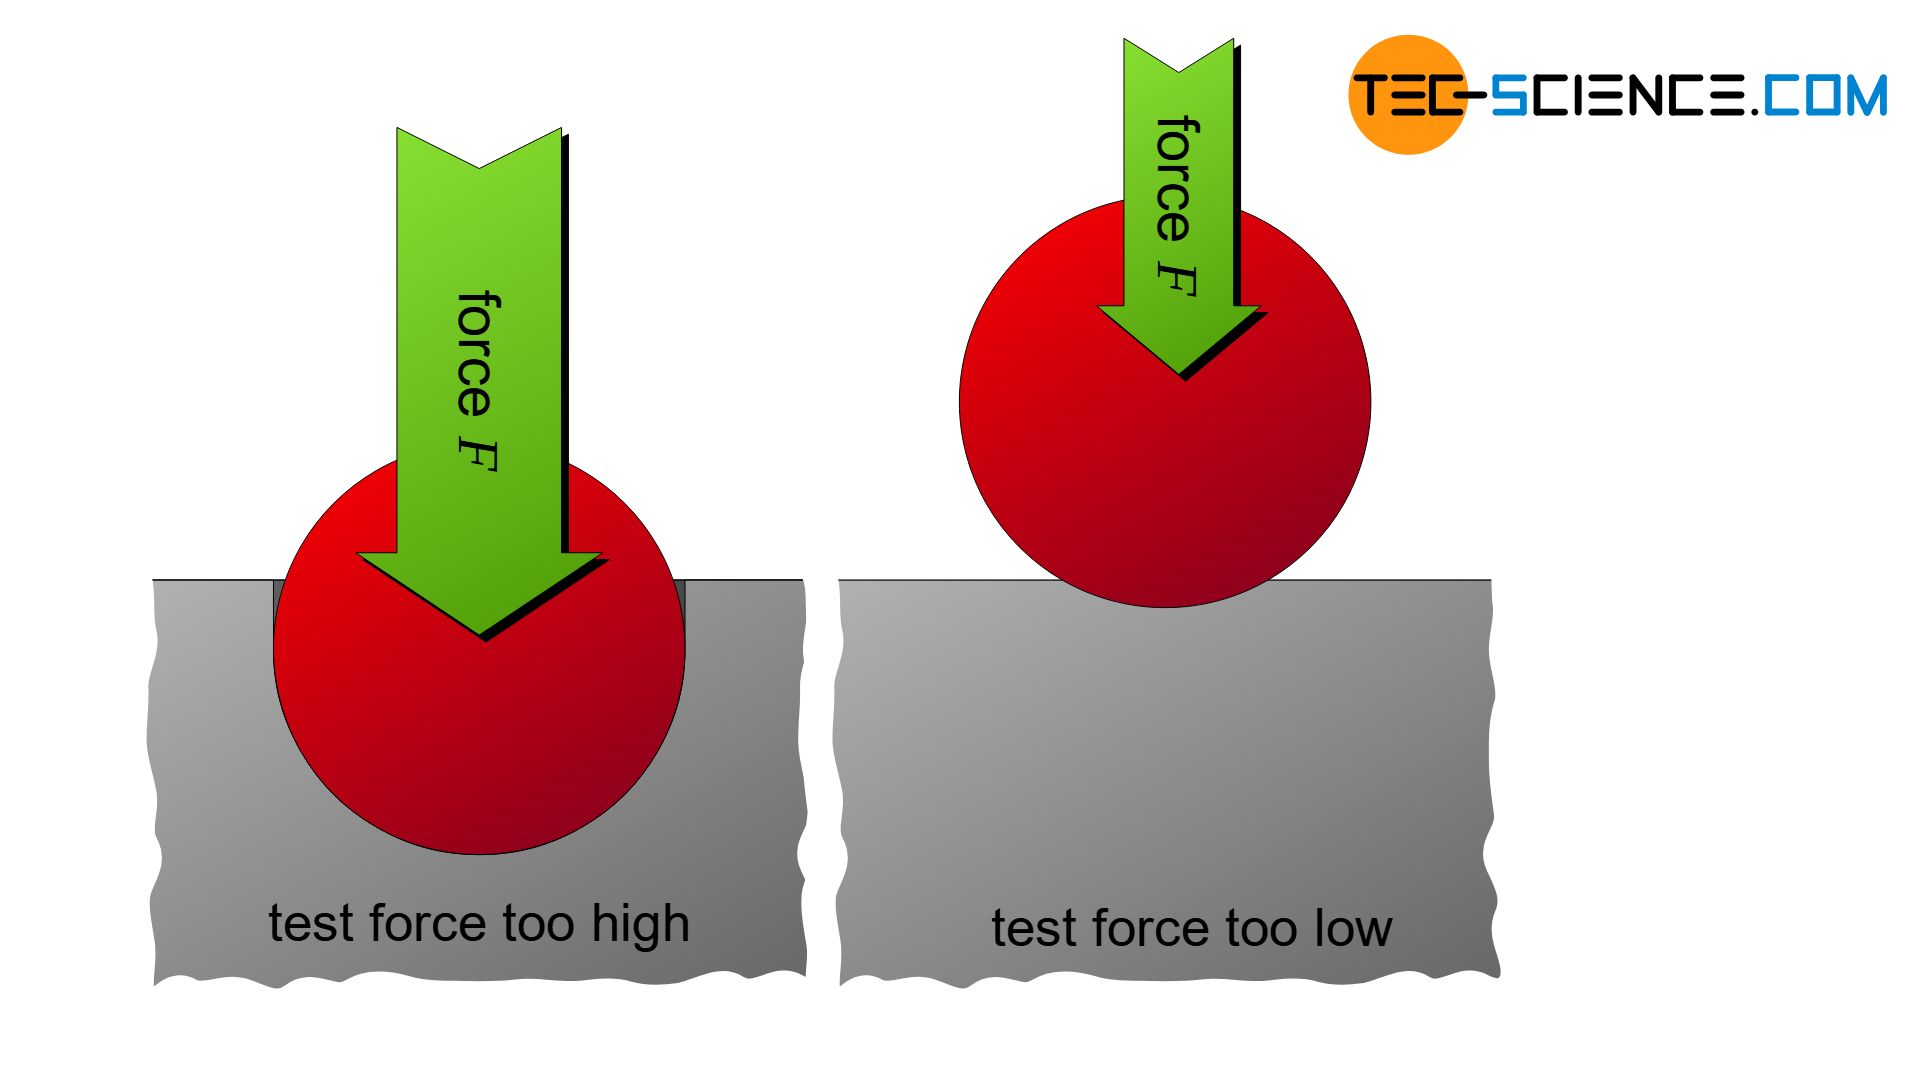 Too high and too low test loads